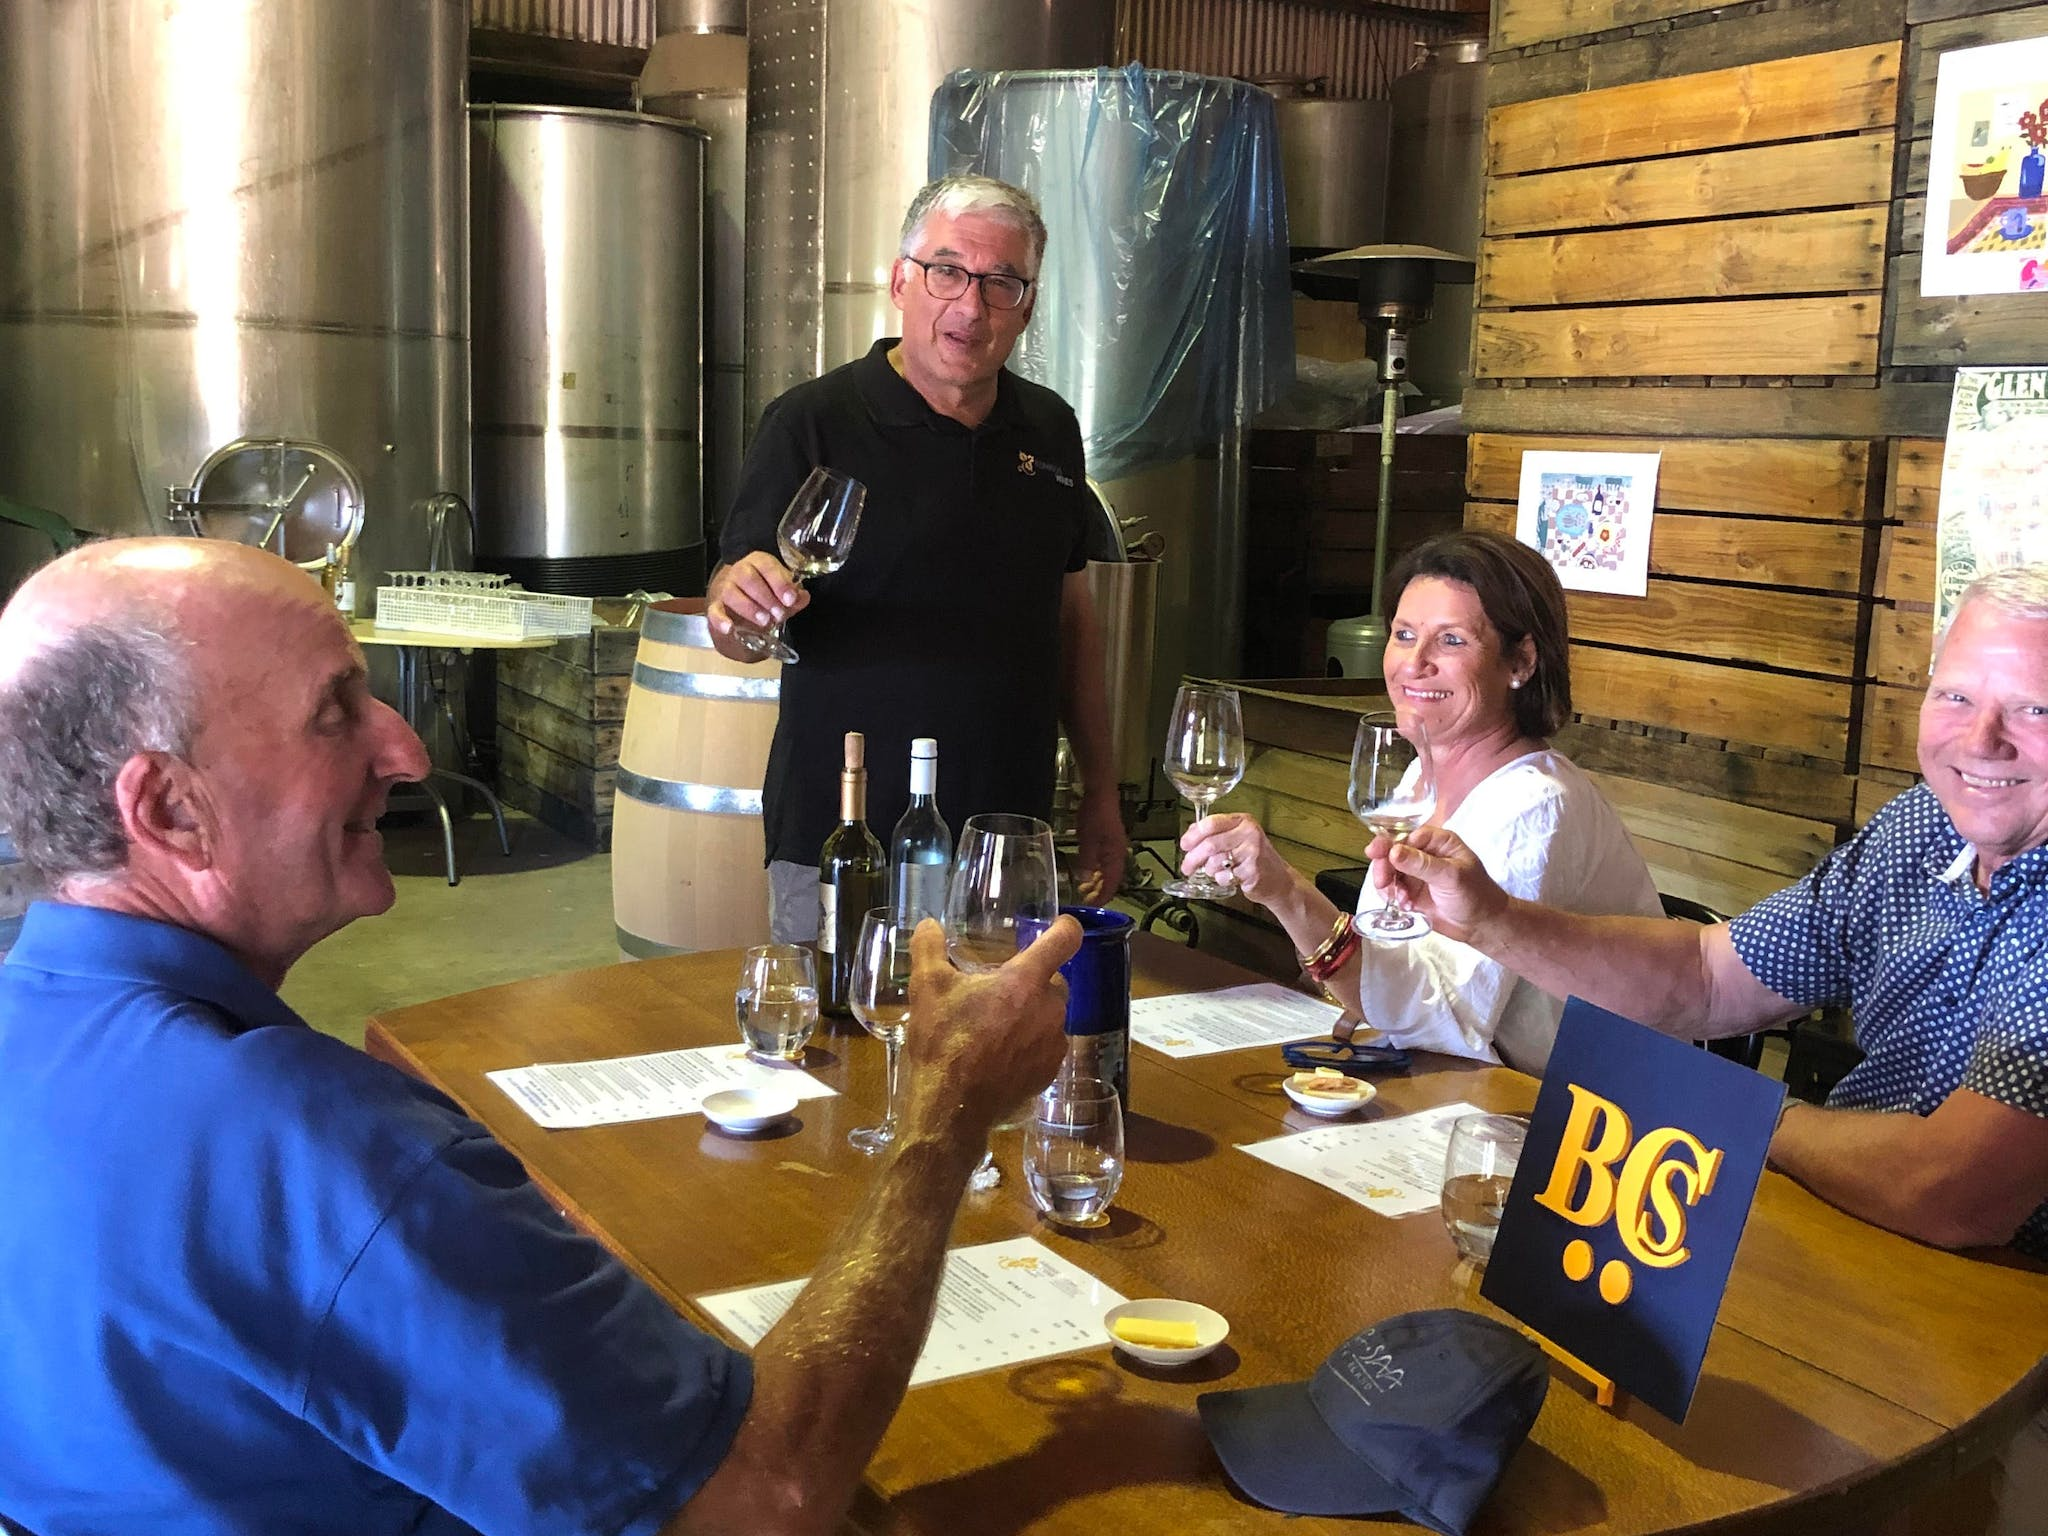 Listen to the story of the wine as explained by Tony the winemaker at Kominos Winery